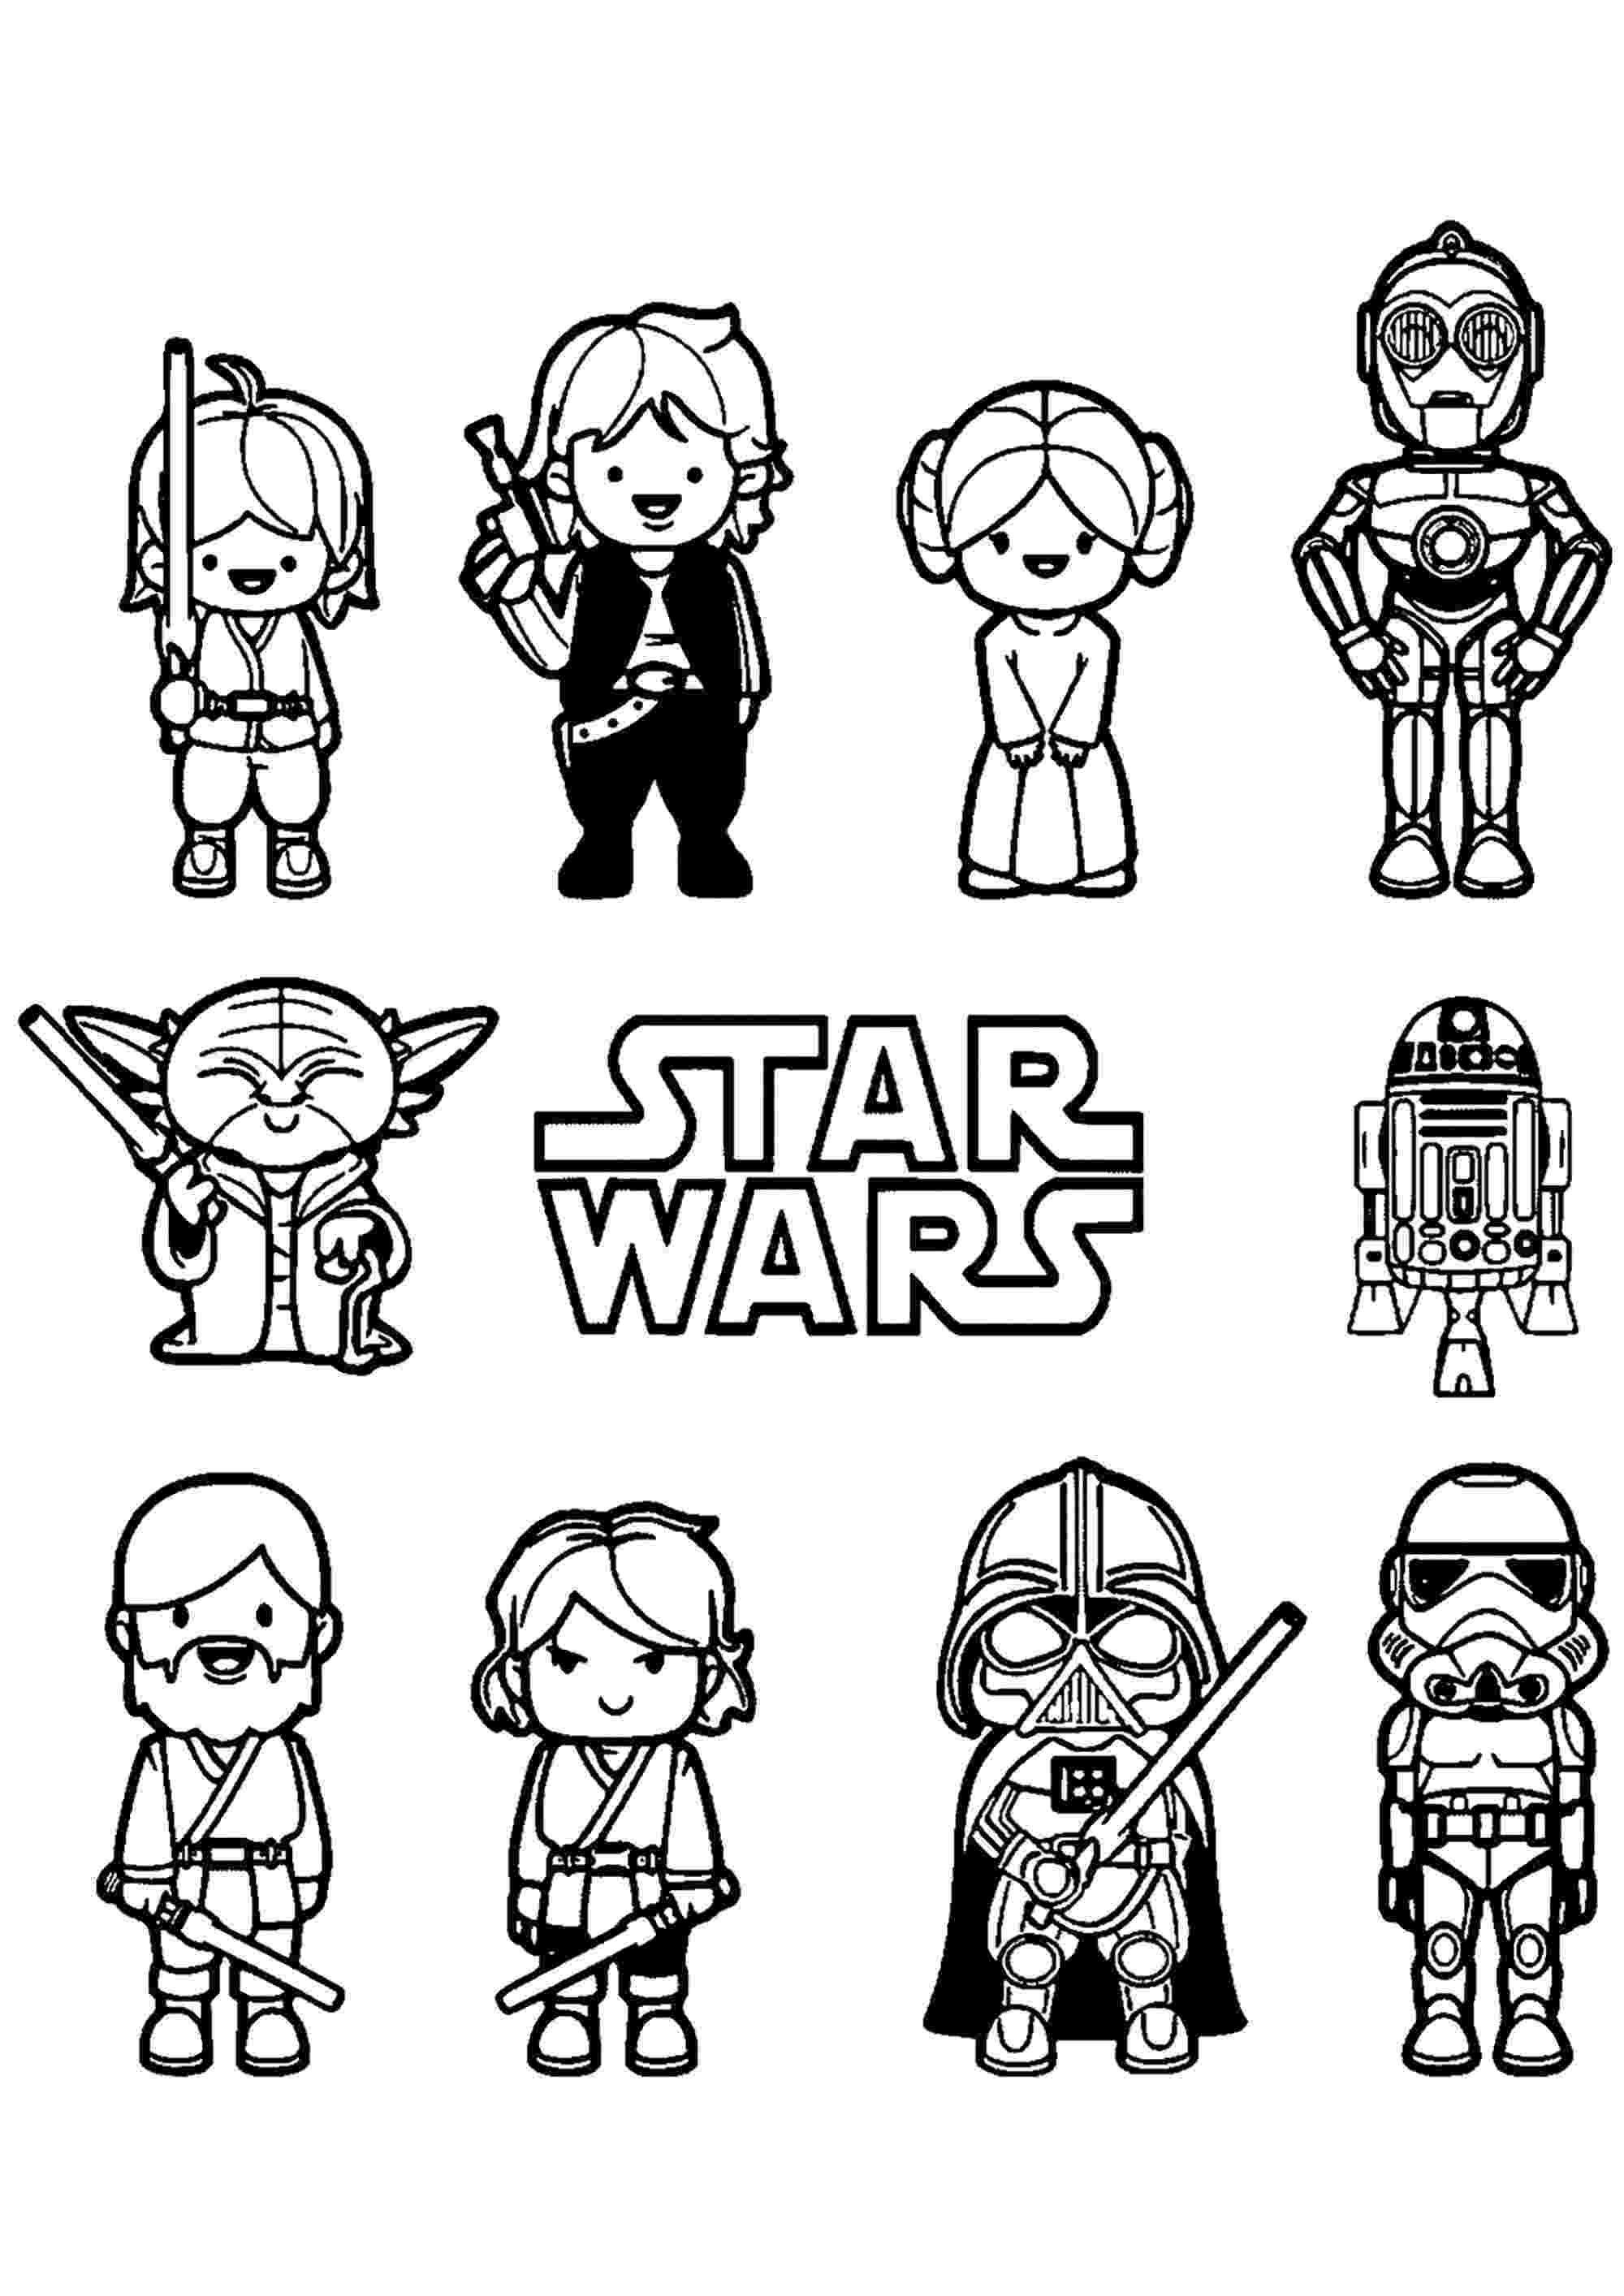 star wars free coloring pages star wars free to color for kids star wars kids coloring free star pages wars coloring